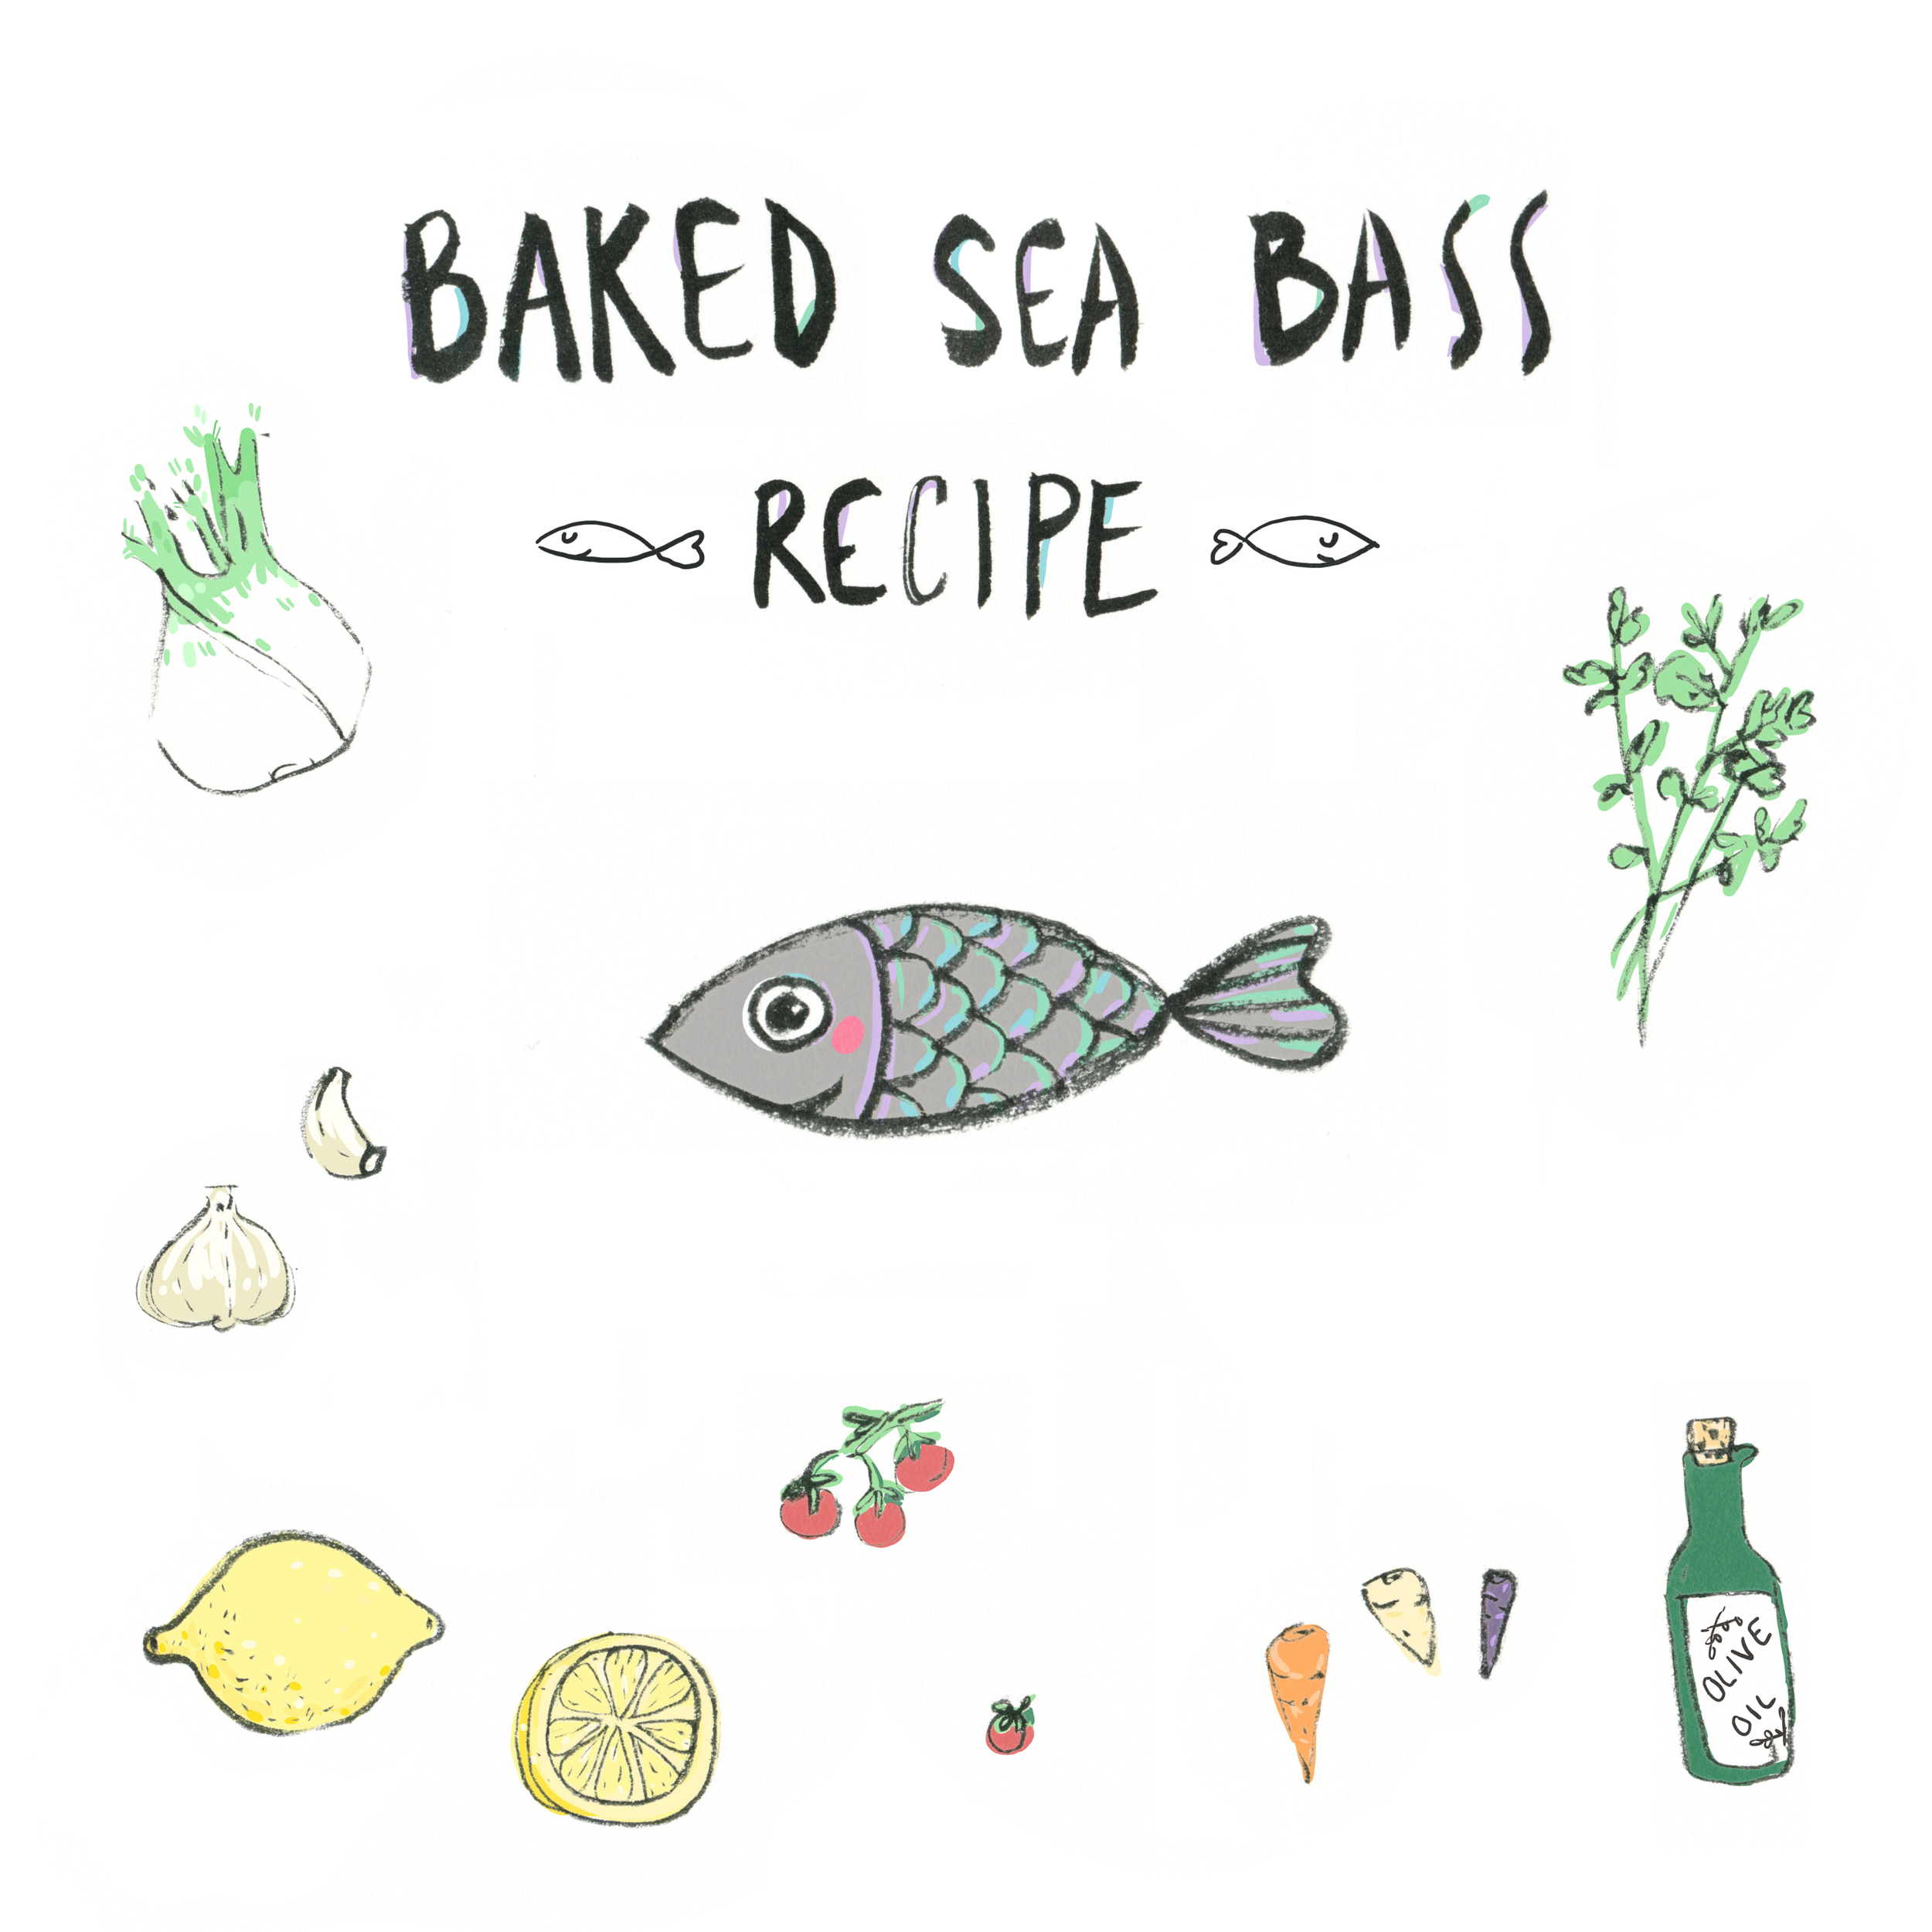 sea bass recipe drawings by andsmile